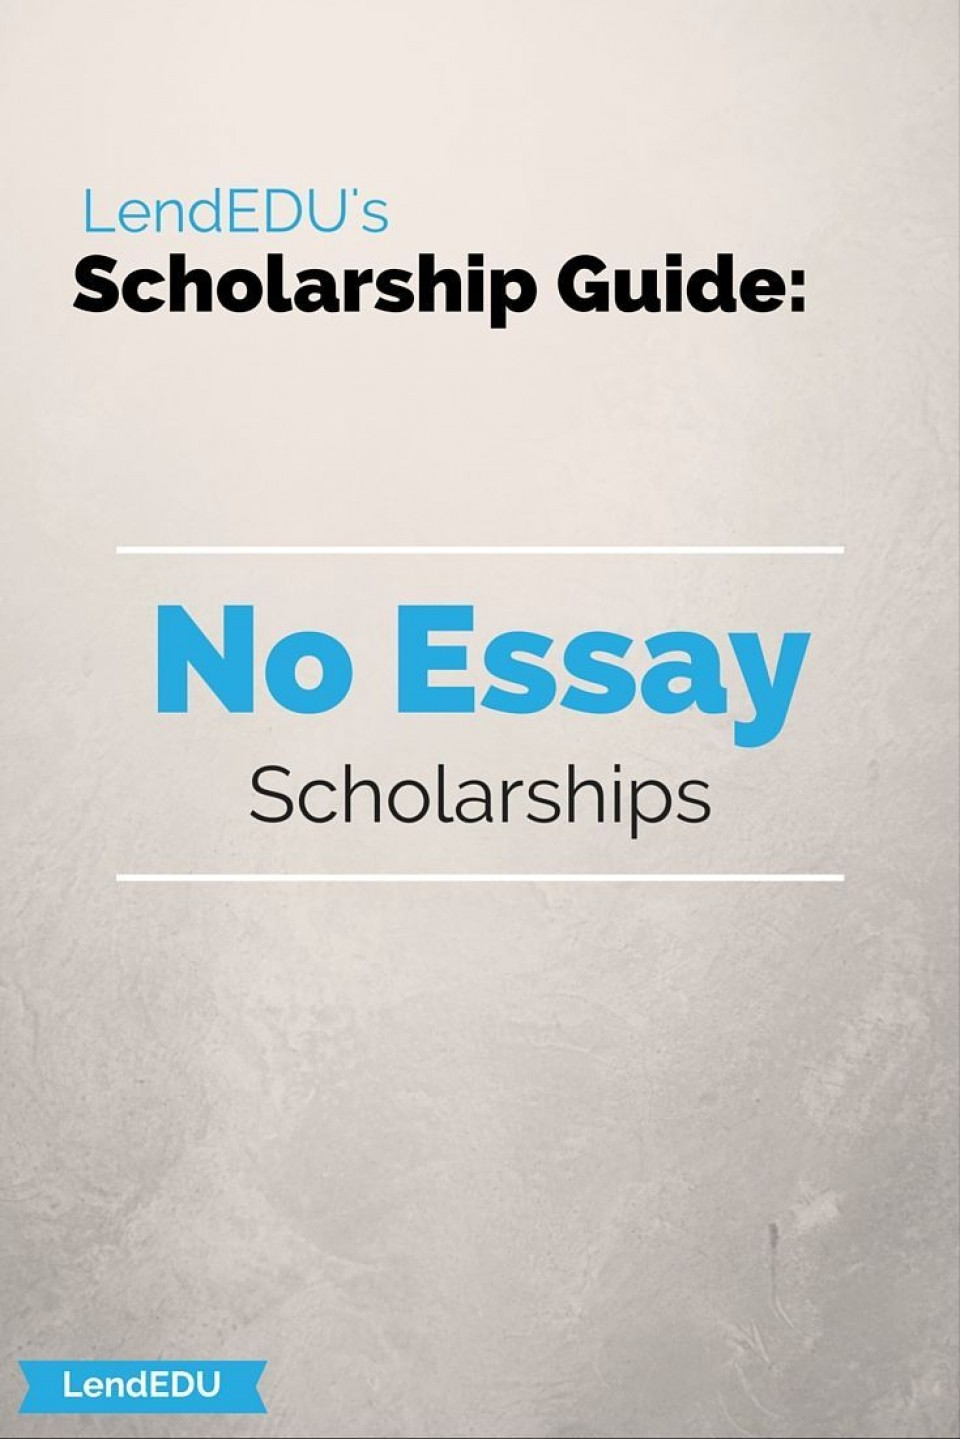 016 Essay Example No Scholarship Wondrous Scholarships For High School Freshman Seniors 2019 960